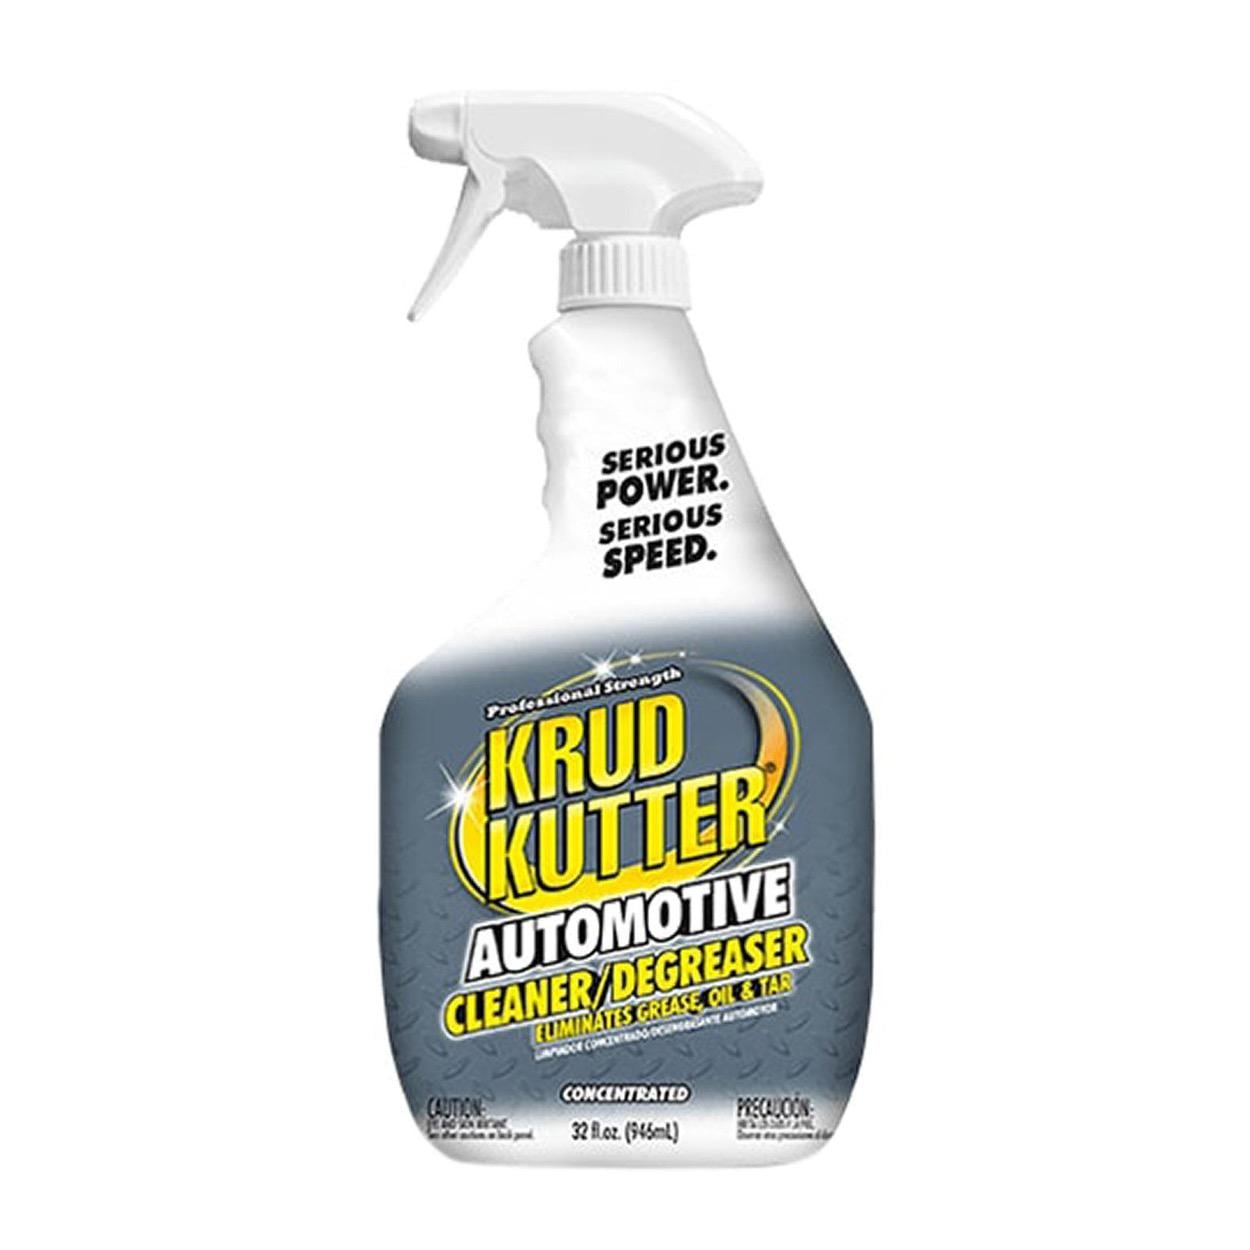 Krud Automotive Cleaner/Degrease